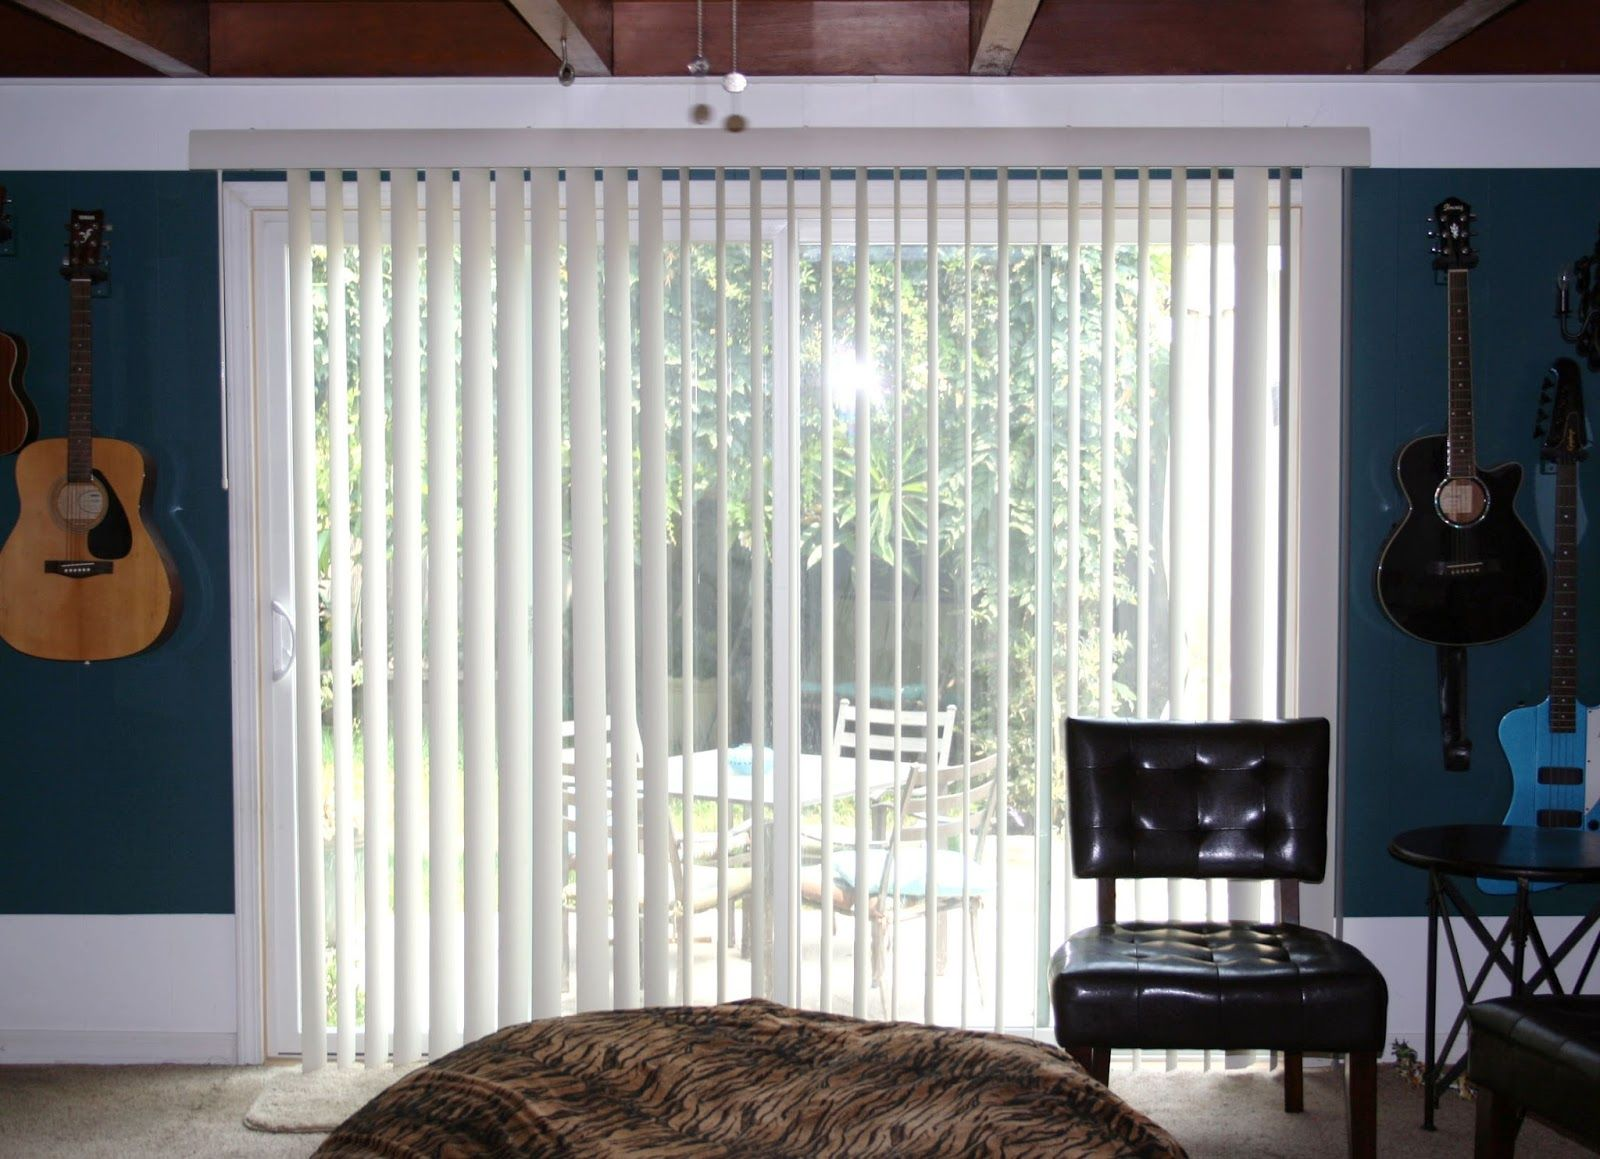 Hanging Curtains On A Vertical Blind Track Vertical